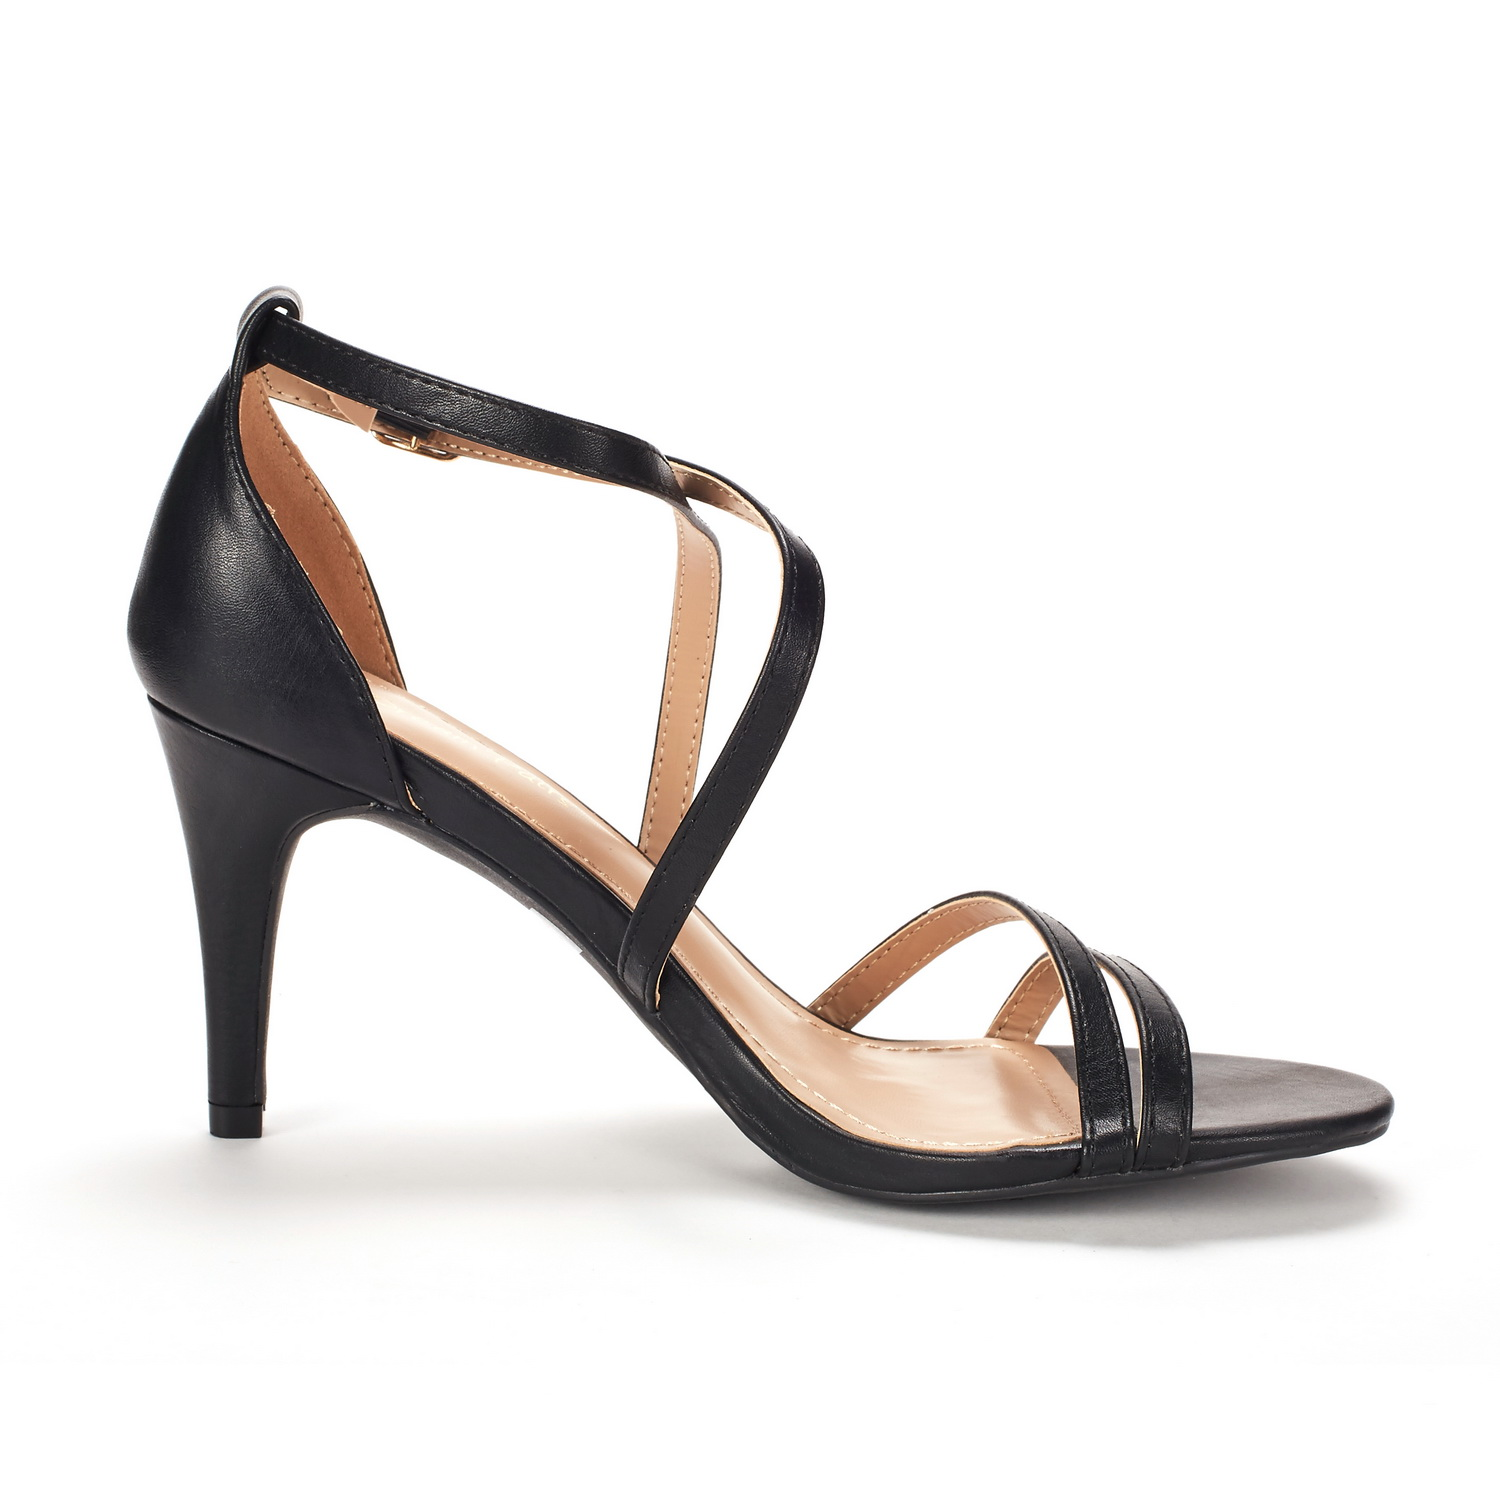 DREAM-PAIRS-Women-039-s-Ankle-Strap-High-Heel-Sandals-Dress-Shoes-Wedding-Party thumbnail 12